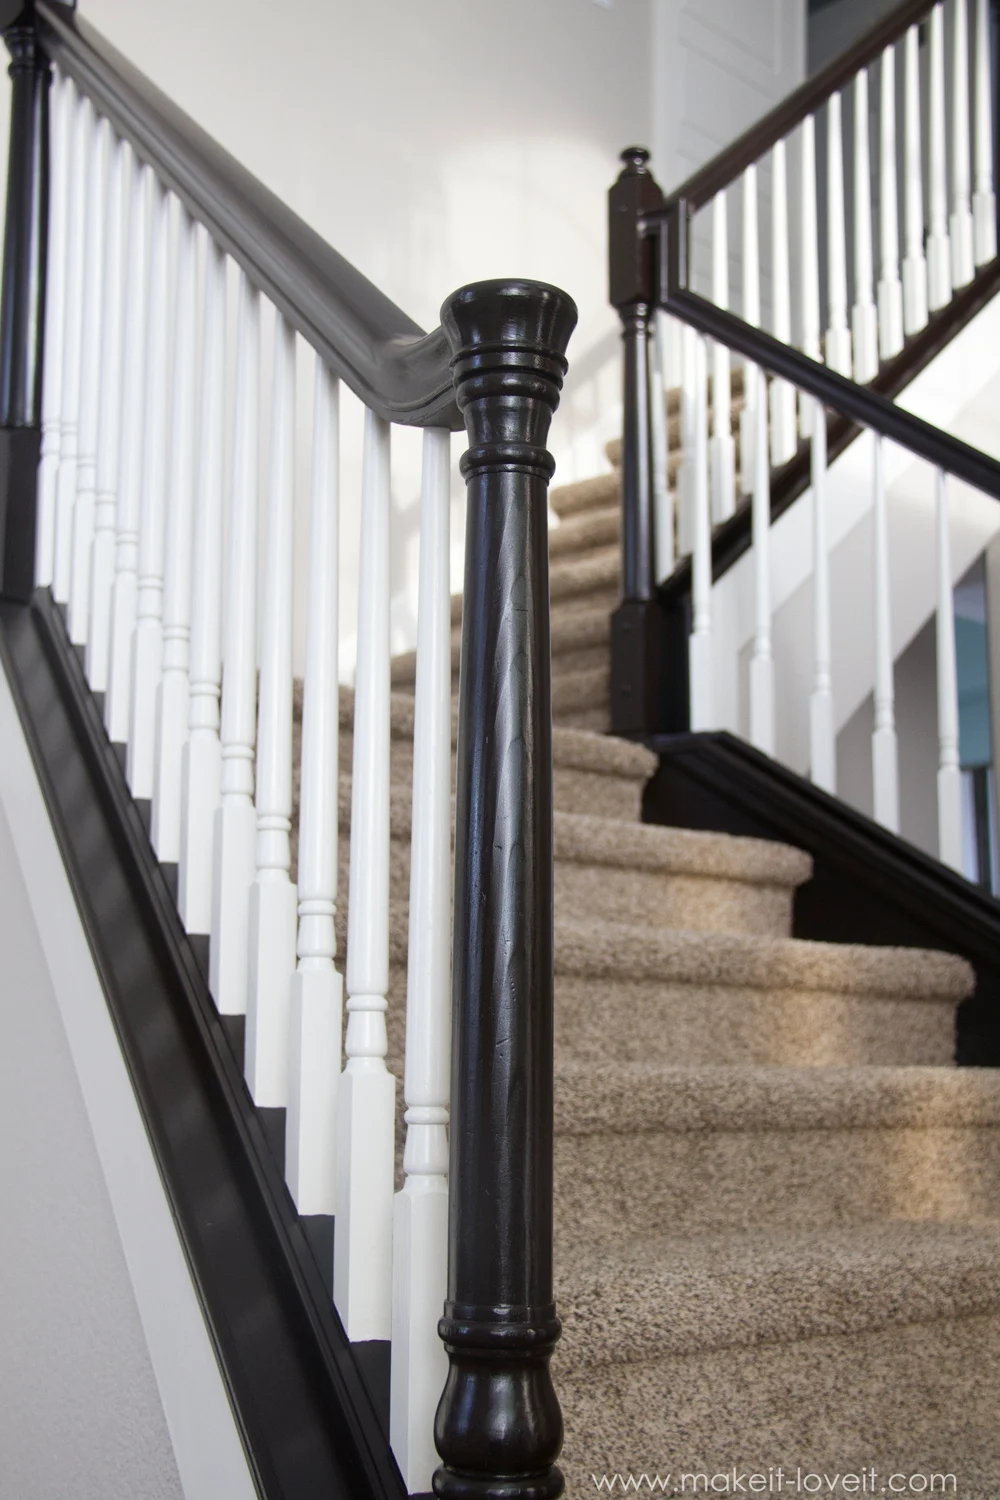 How To Paint Stain Wood Stair Railings Oak Banisters Spindles   Cost Of New Banister And Spindles   Chris Loves Julia   Stair Parts   Stair Treads   Paint   Iron Stair